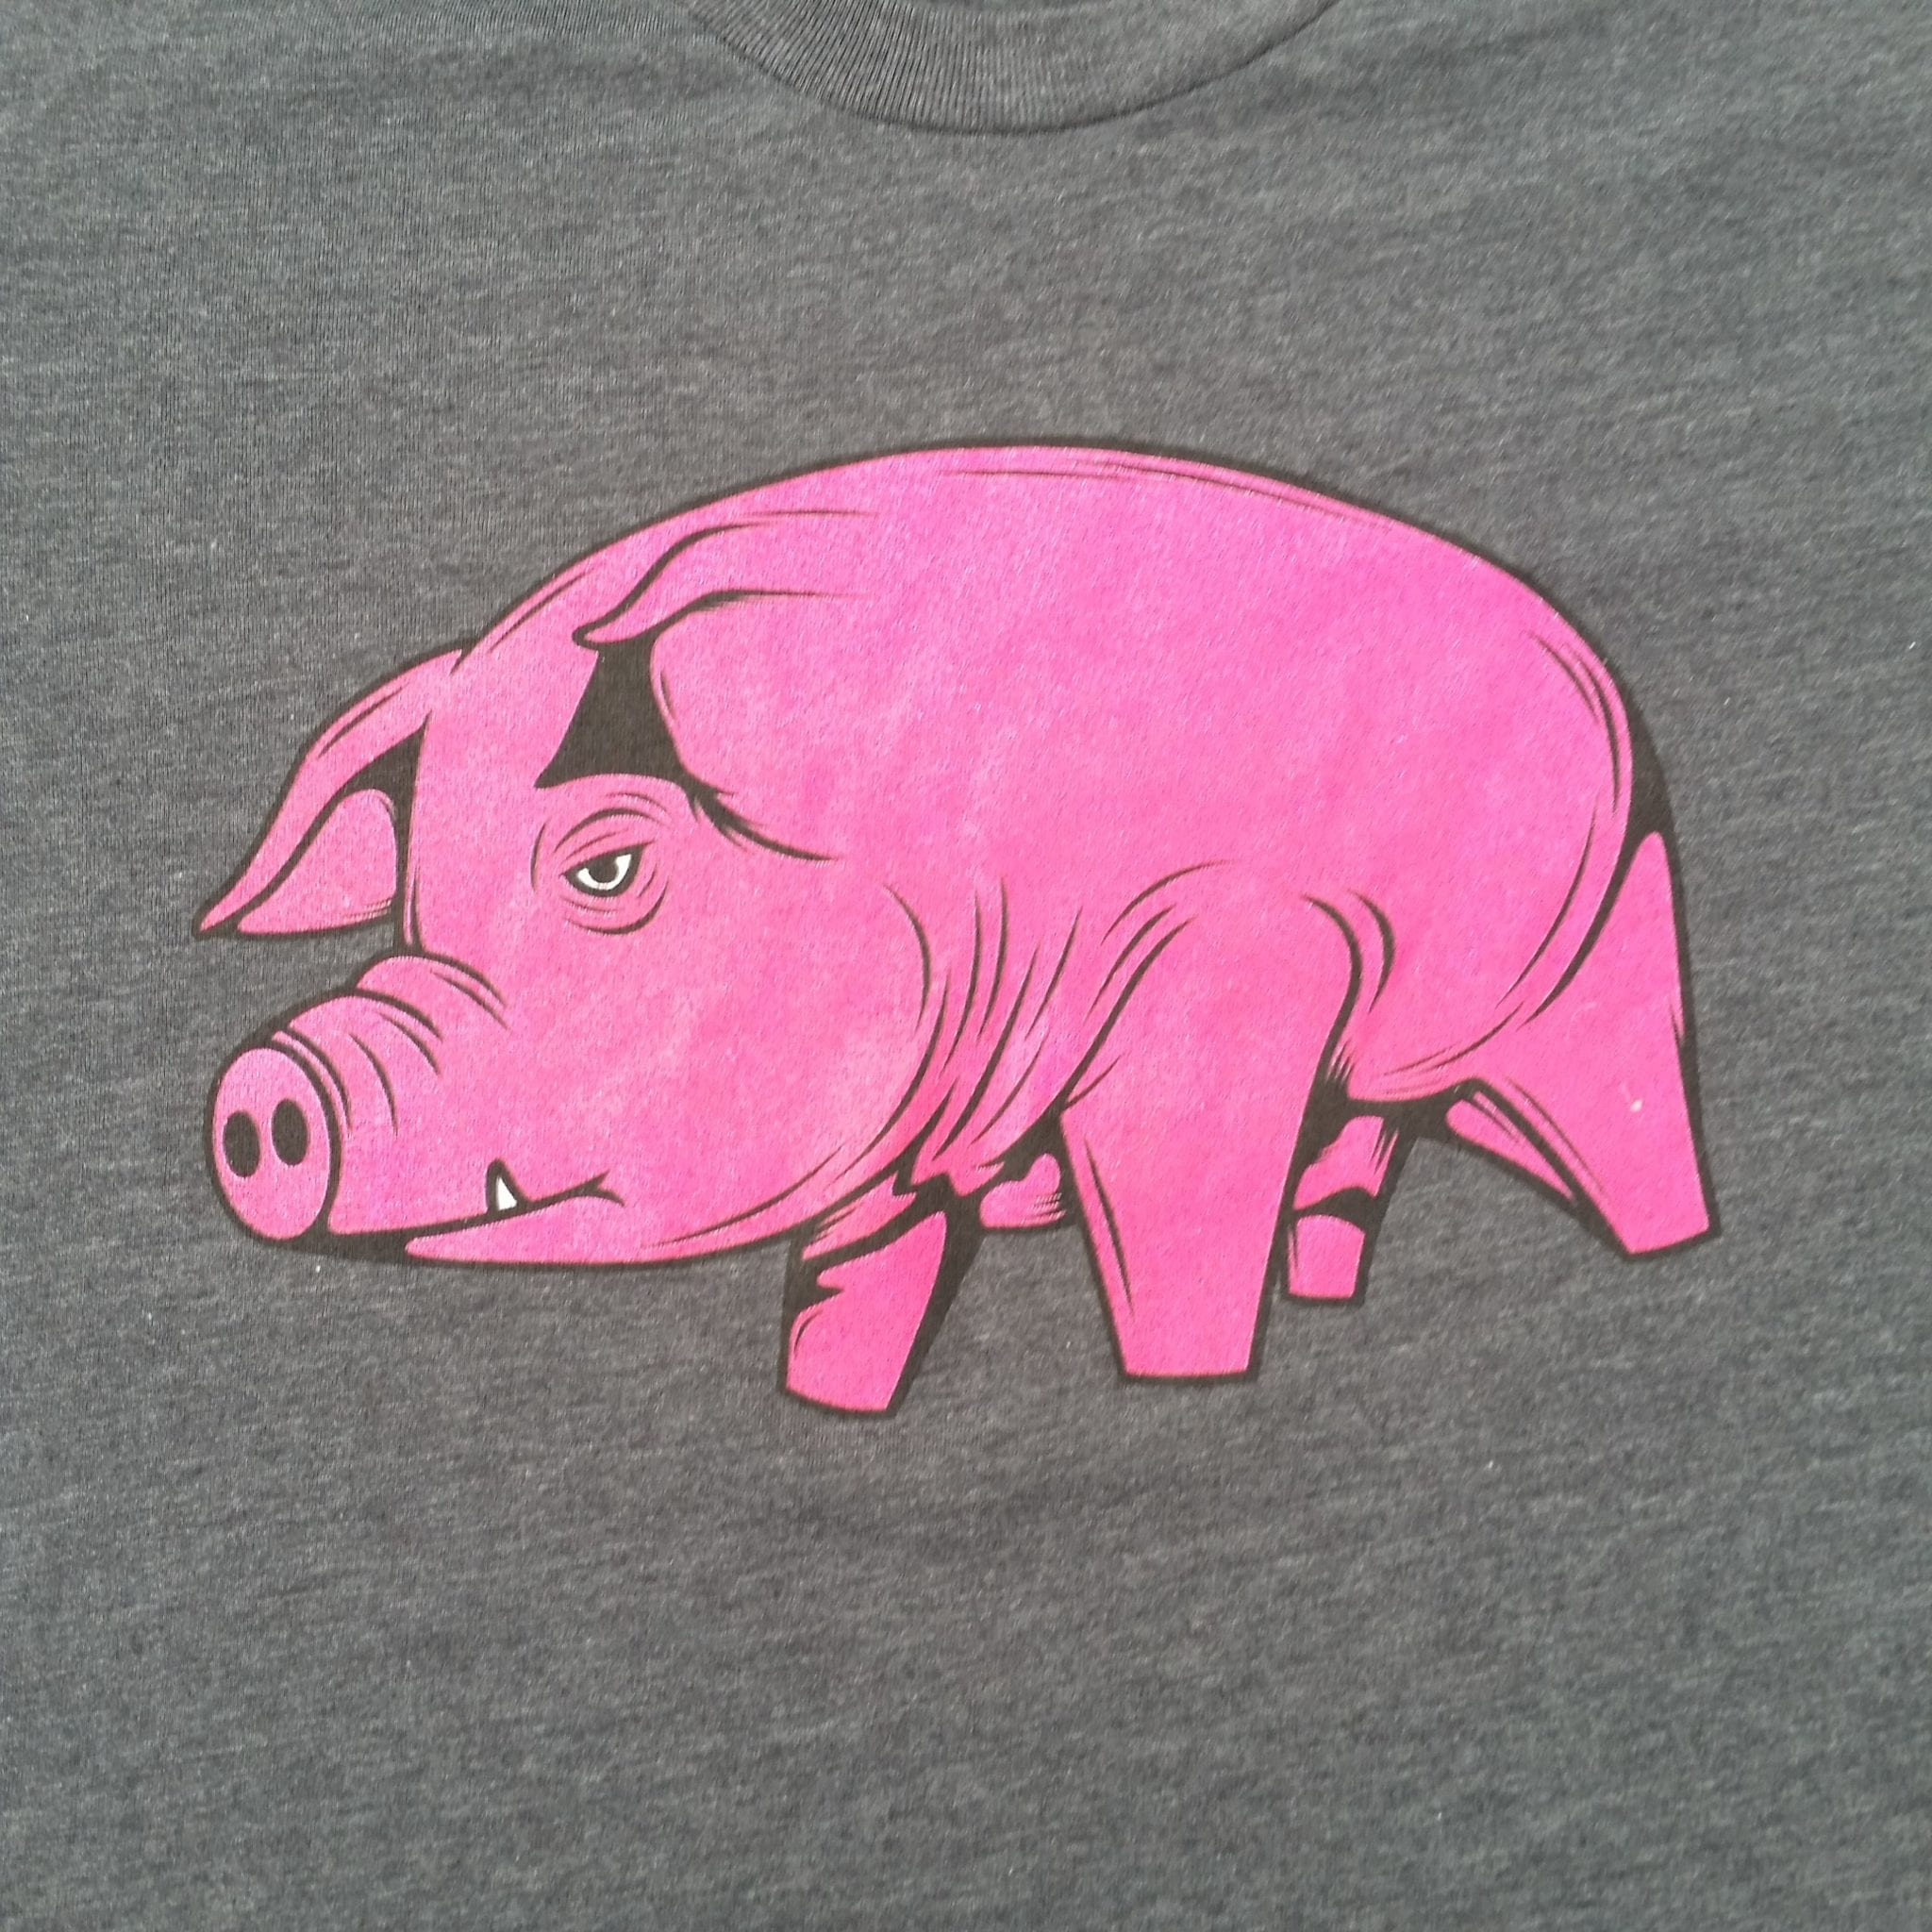 8b485d72046aa Pigs t-shirt - Pink Floyd inspired fan art - Animals